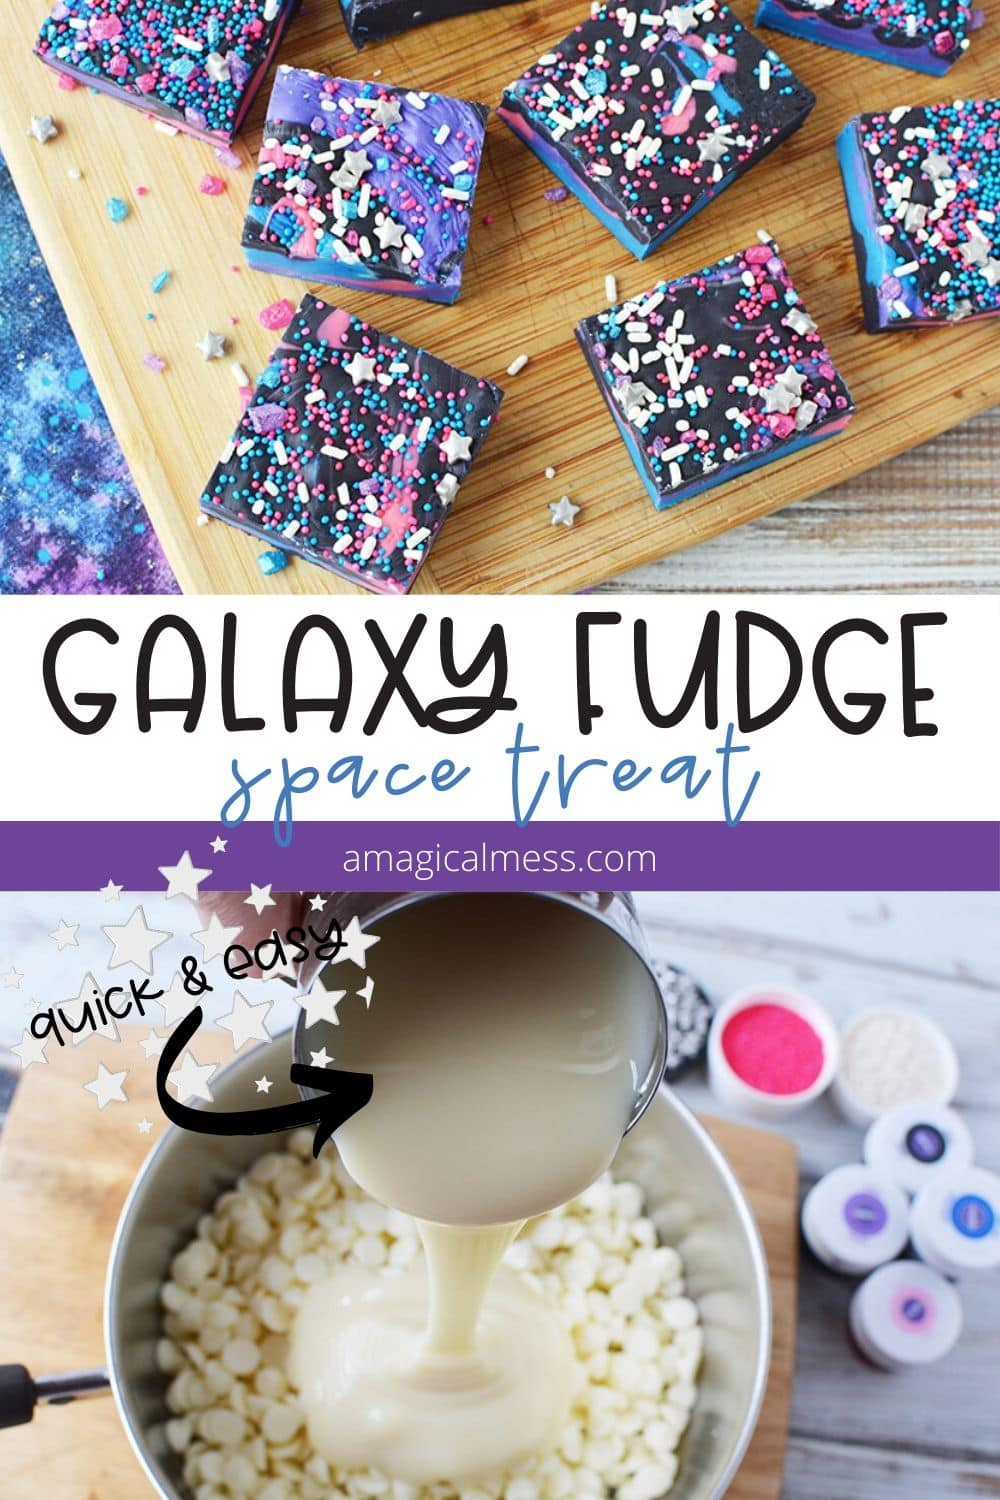 galaxy fudge on a board and pot of chips